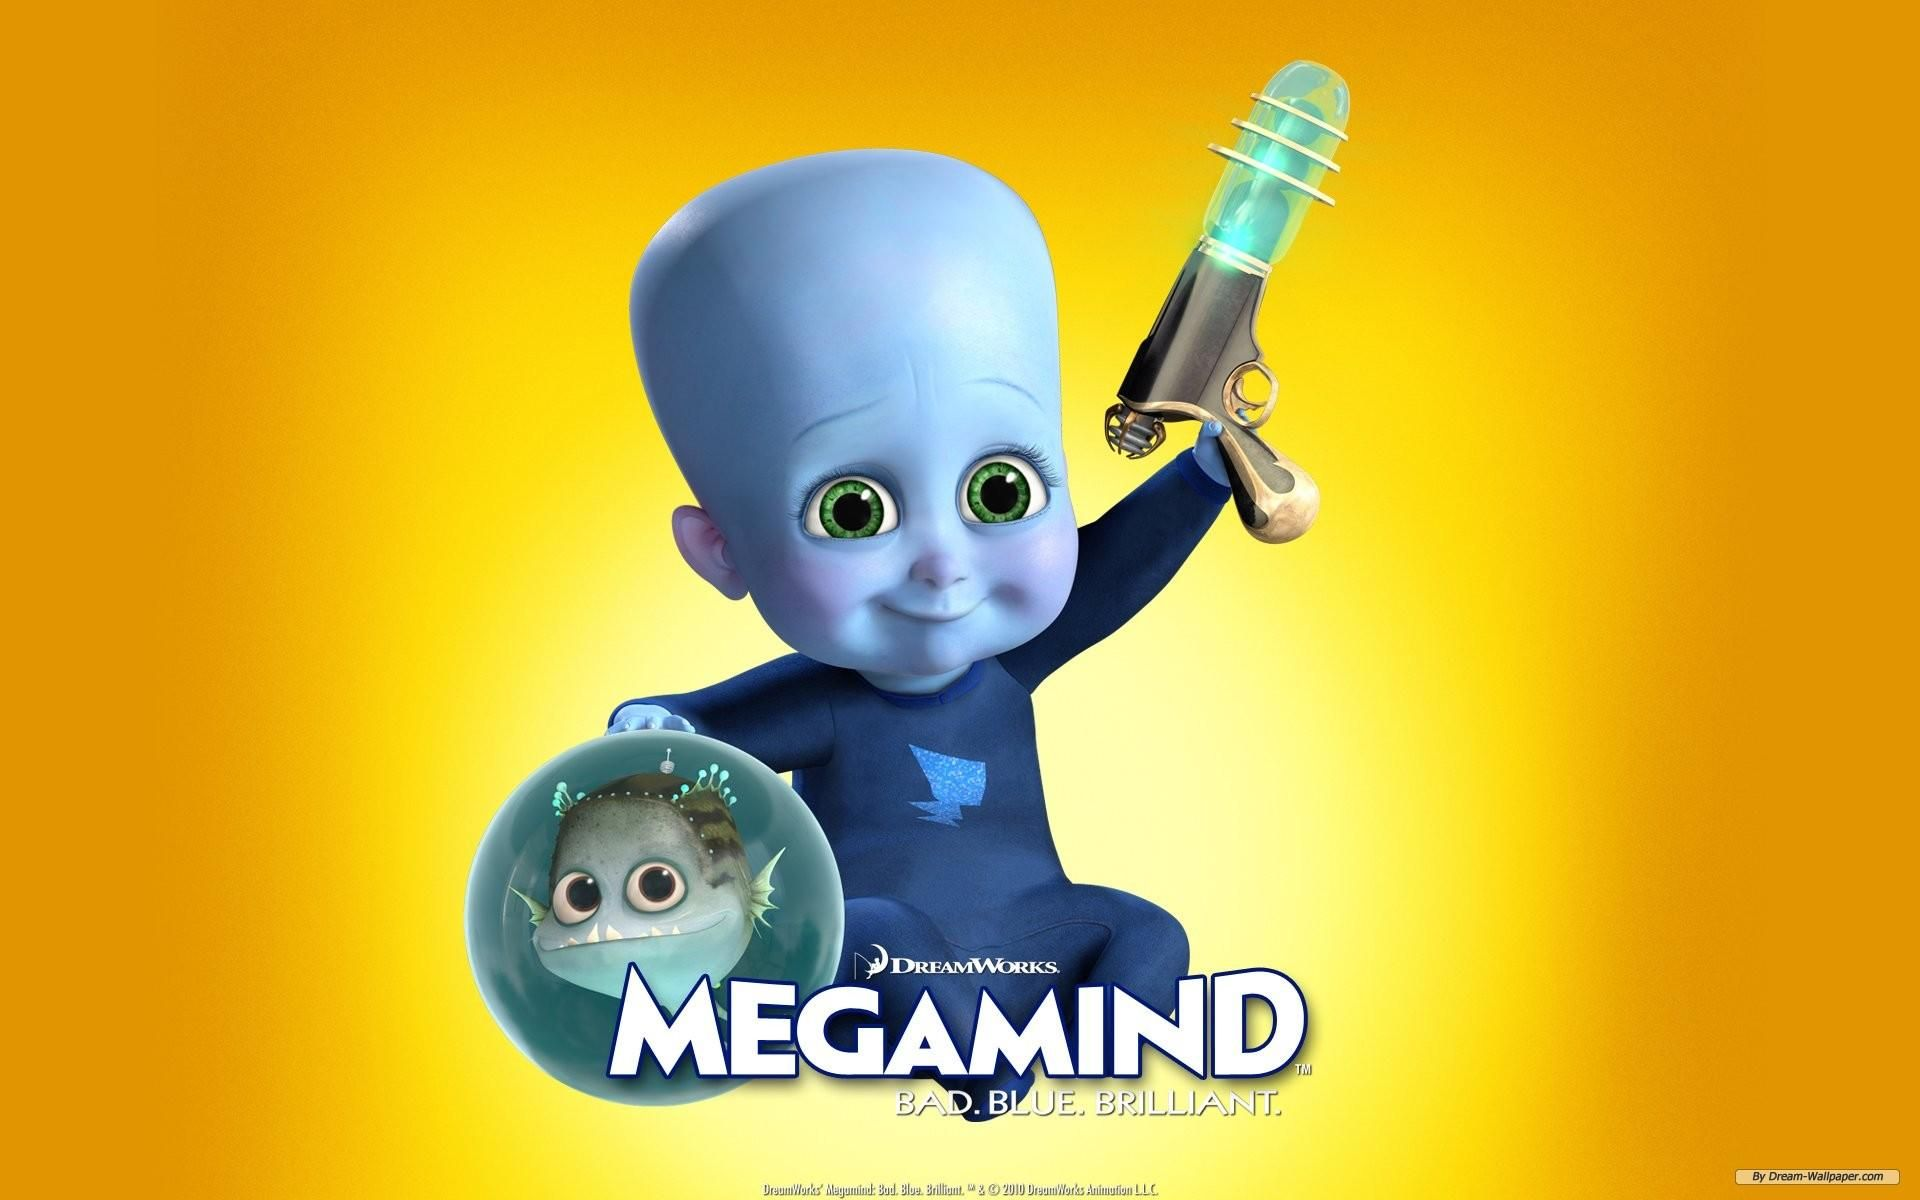 Megamind Hd Wallpapers Backgrounds Wallpaper Animated Movies Cartoon Movies Movie Wallpapers